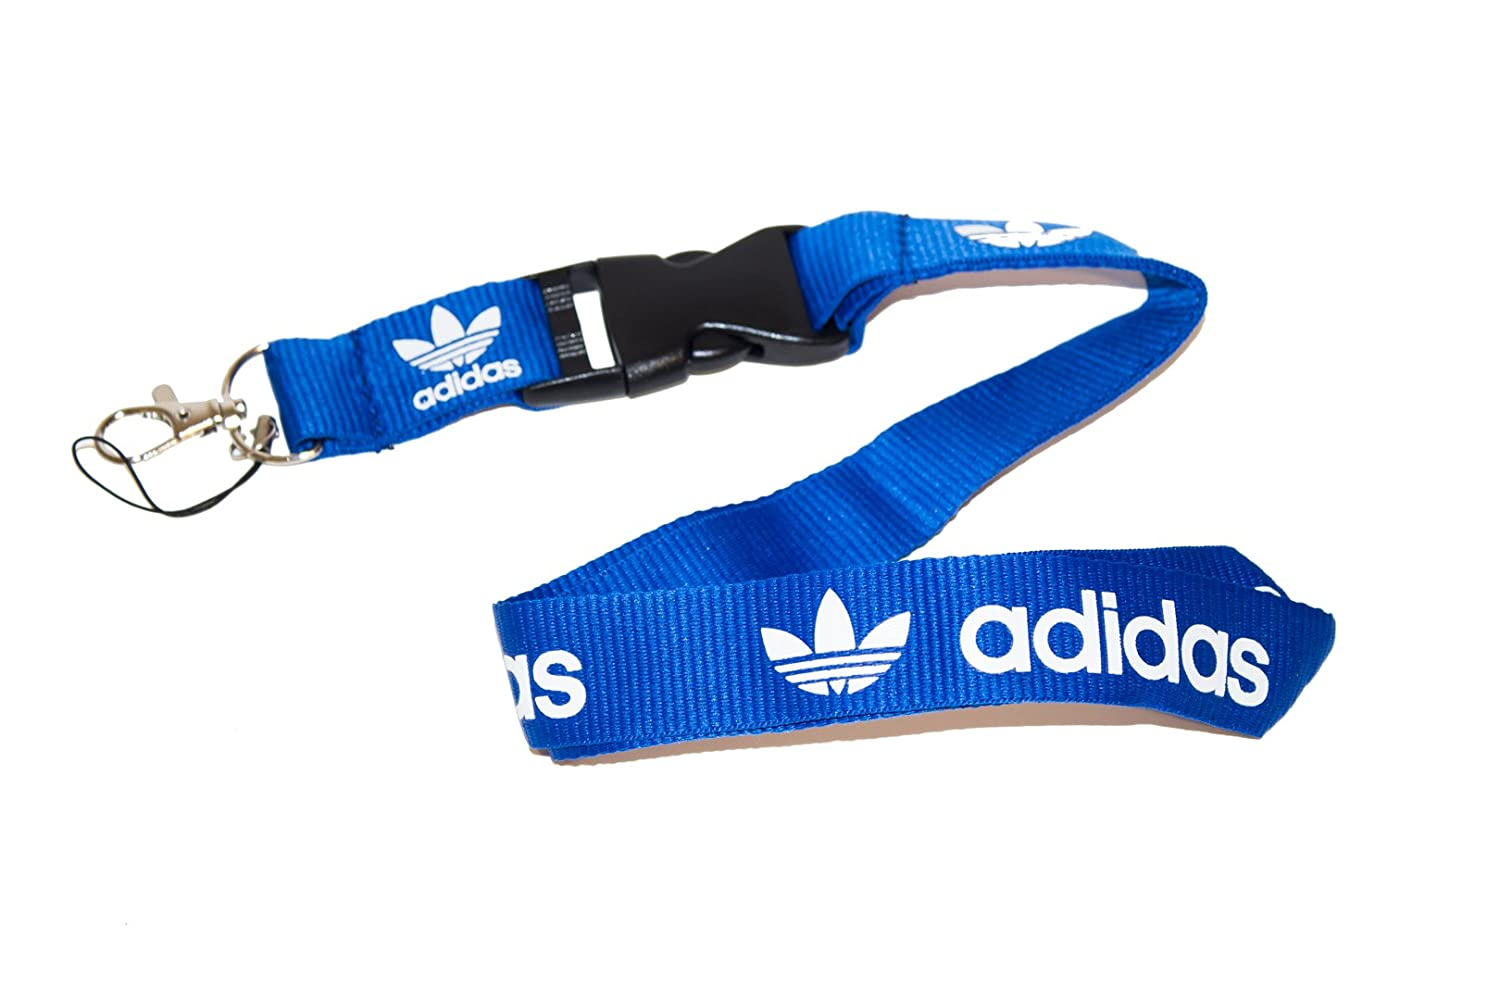 PCK-014 Blue /& White Logo Keychain Key Chain Black Lanyard Clip with Webbing Strap Quick Release Buckle